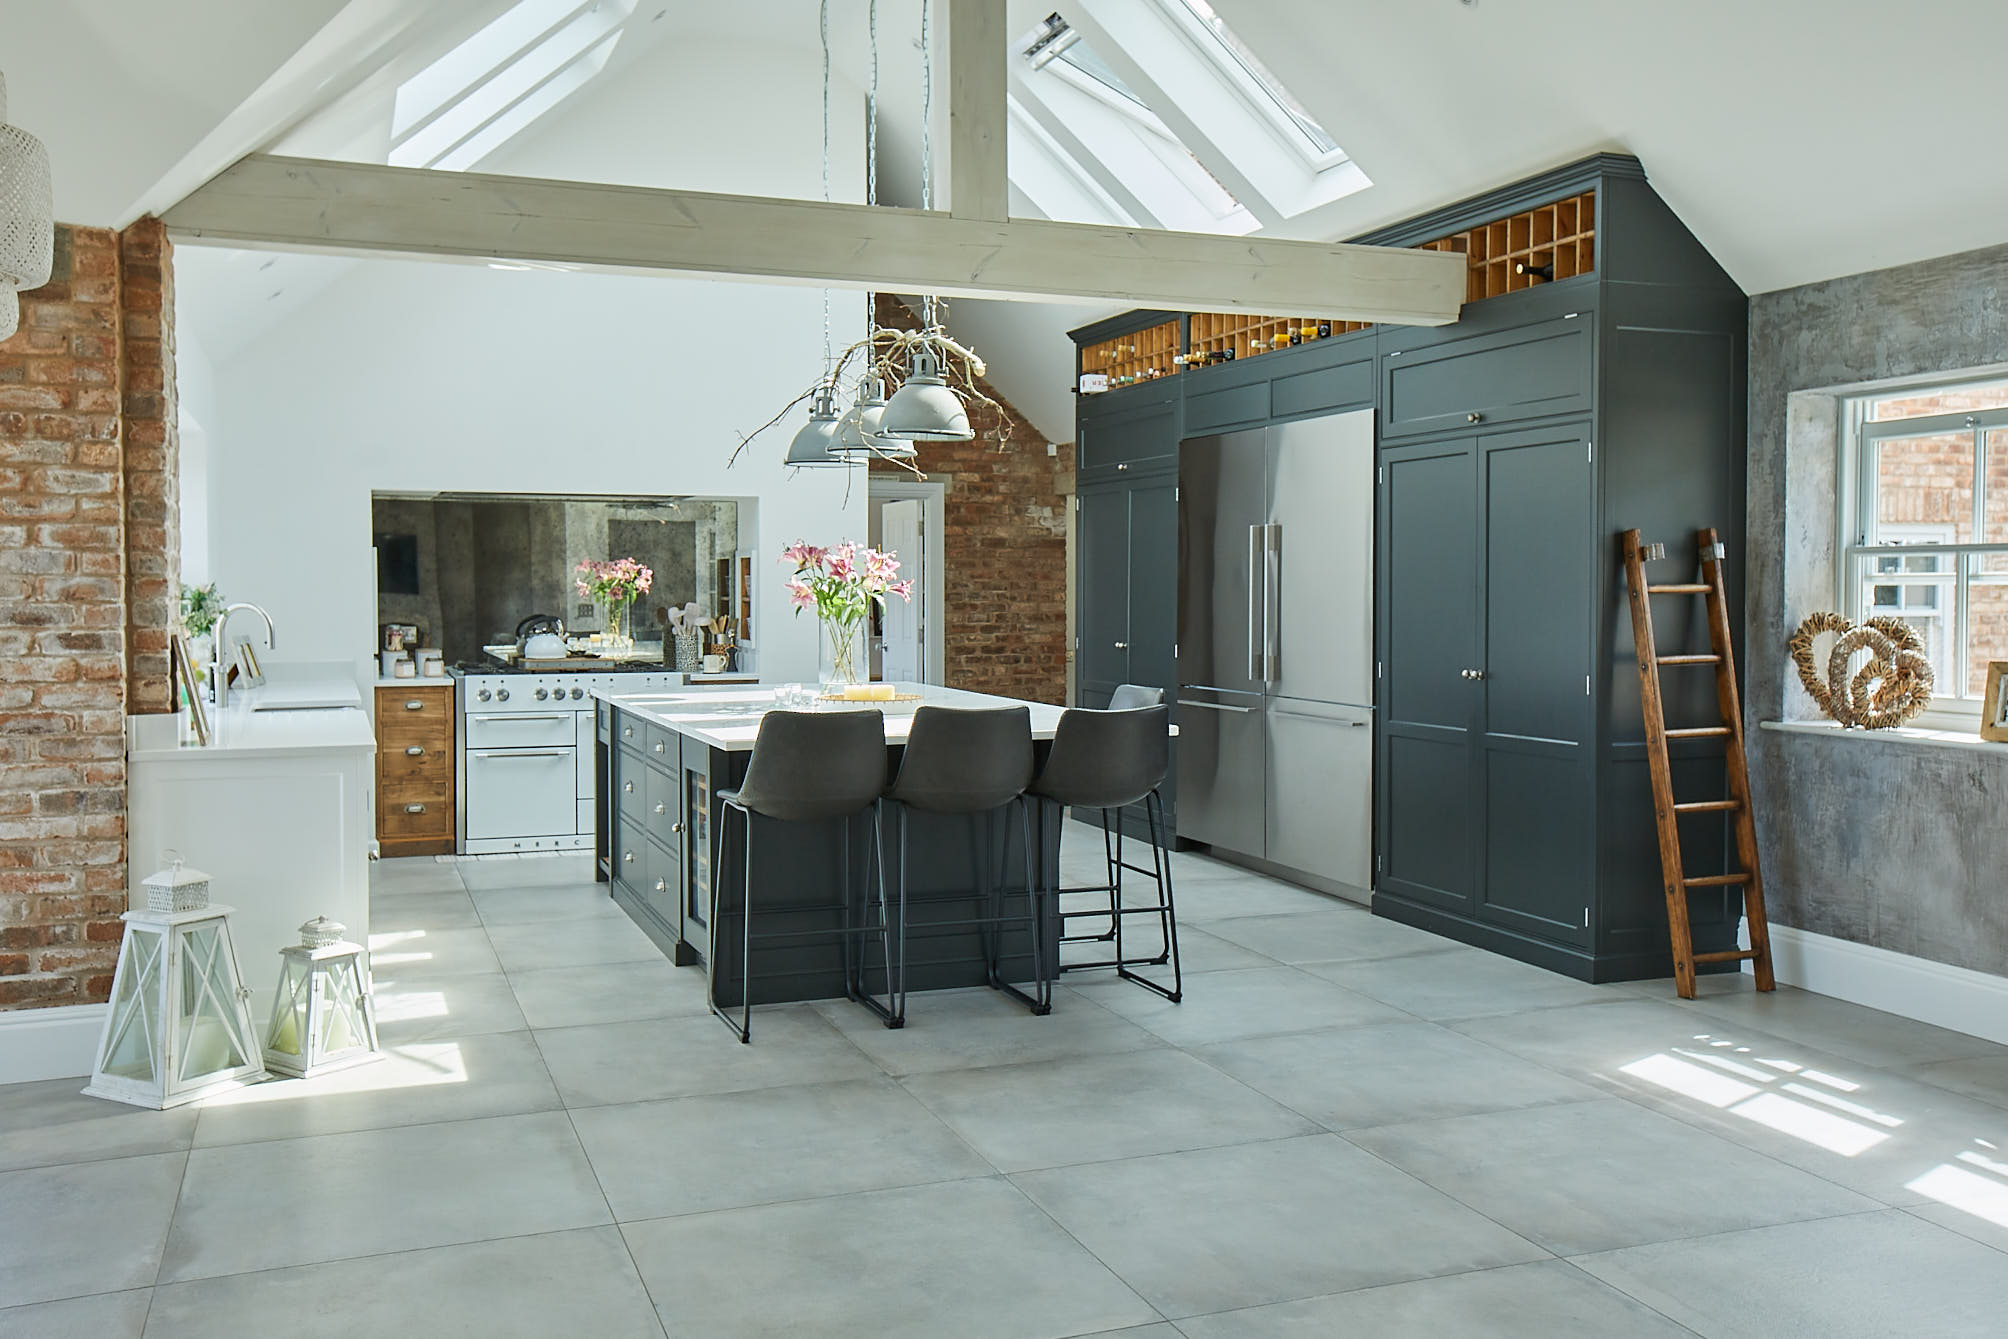 Bespoke kitchen with tall black cabinets and white range cooker